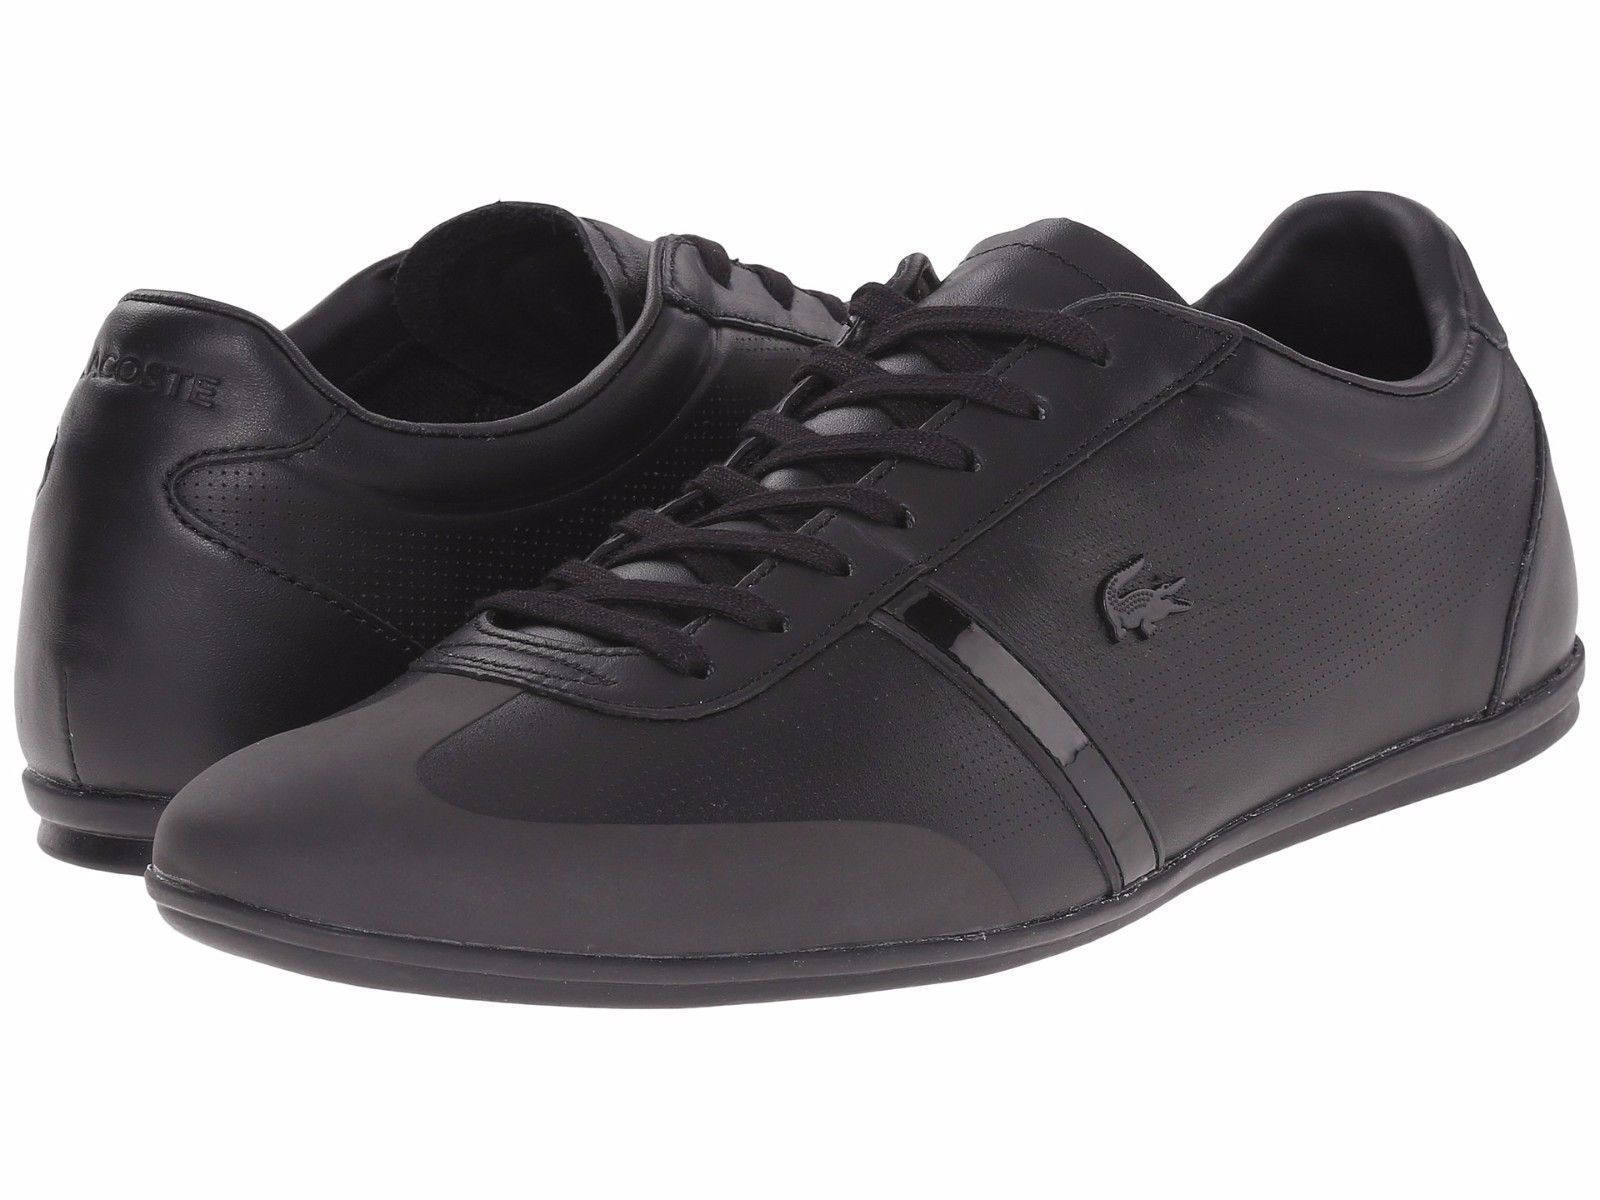 10b53b904ea3b Men S Shoes Lacoste Mokara 116 1 Leather Sneaker 7-31Cam0125024 Black     https